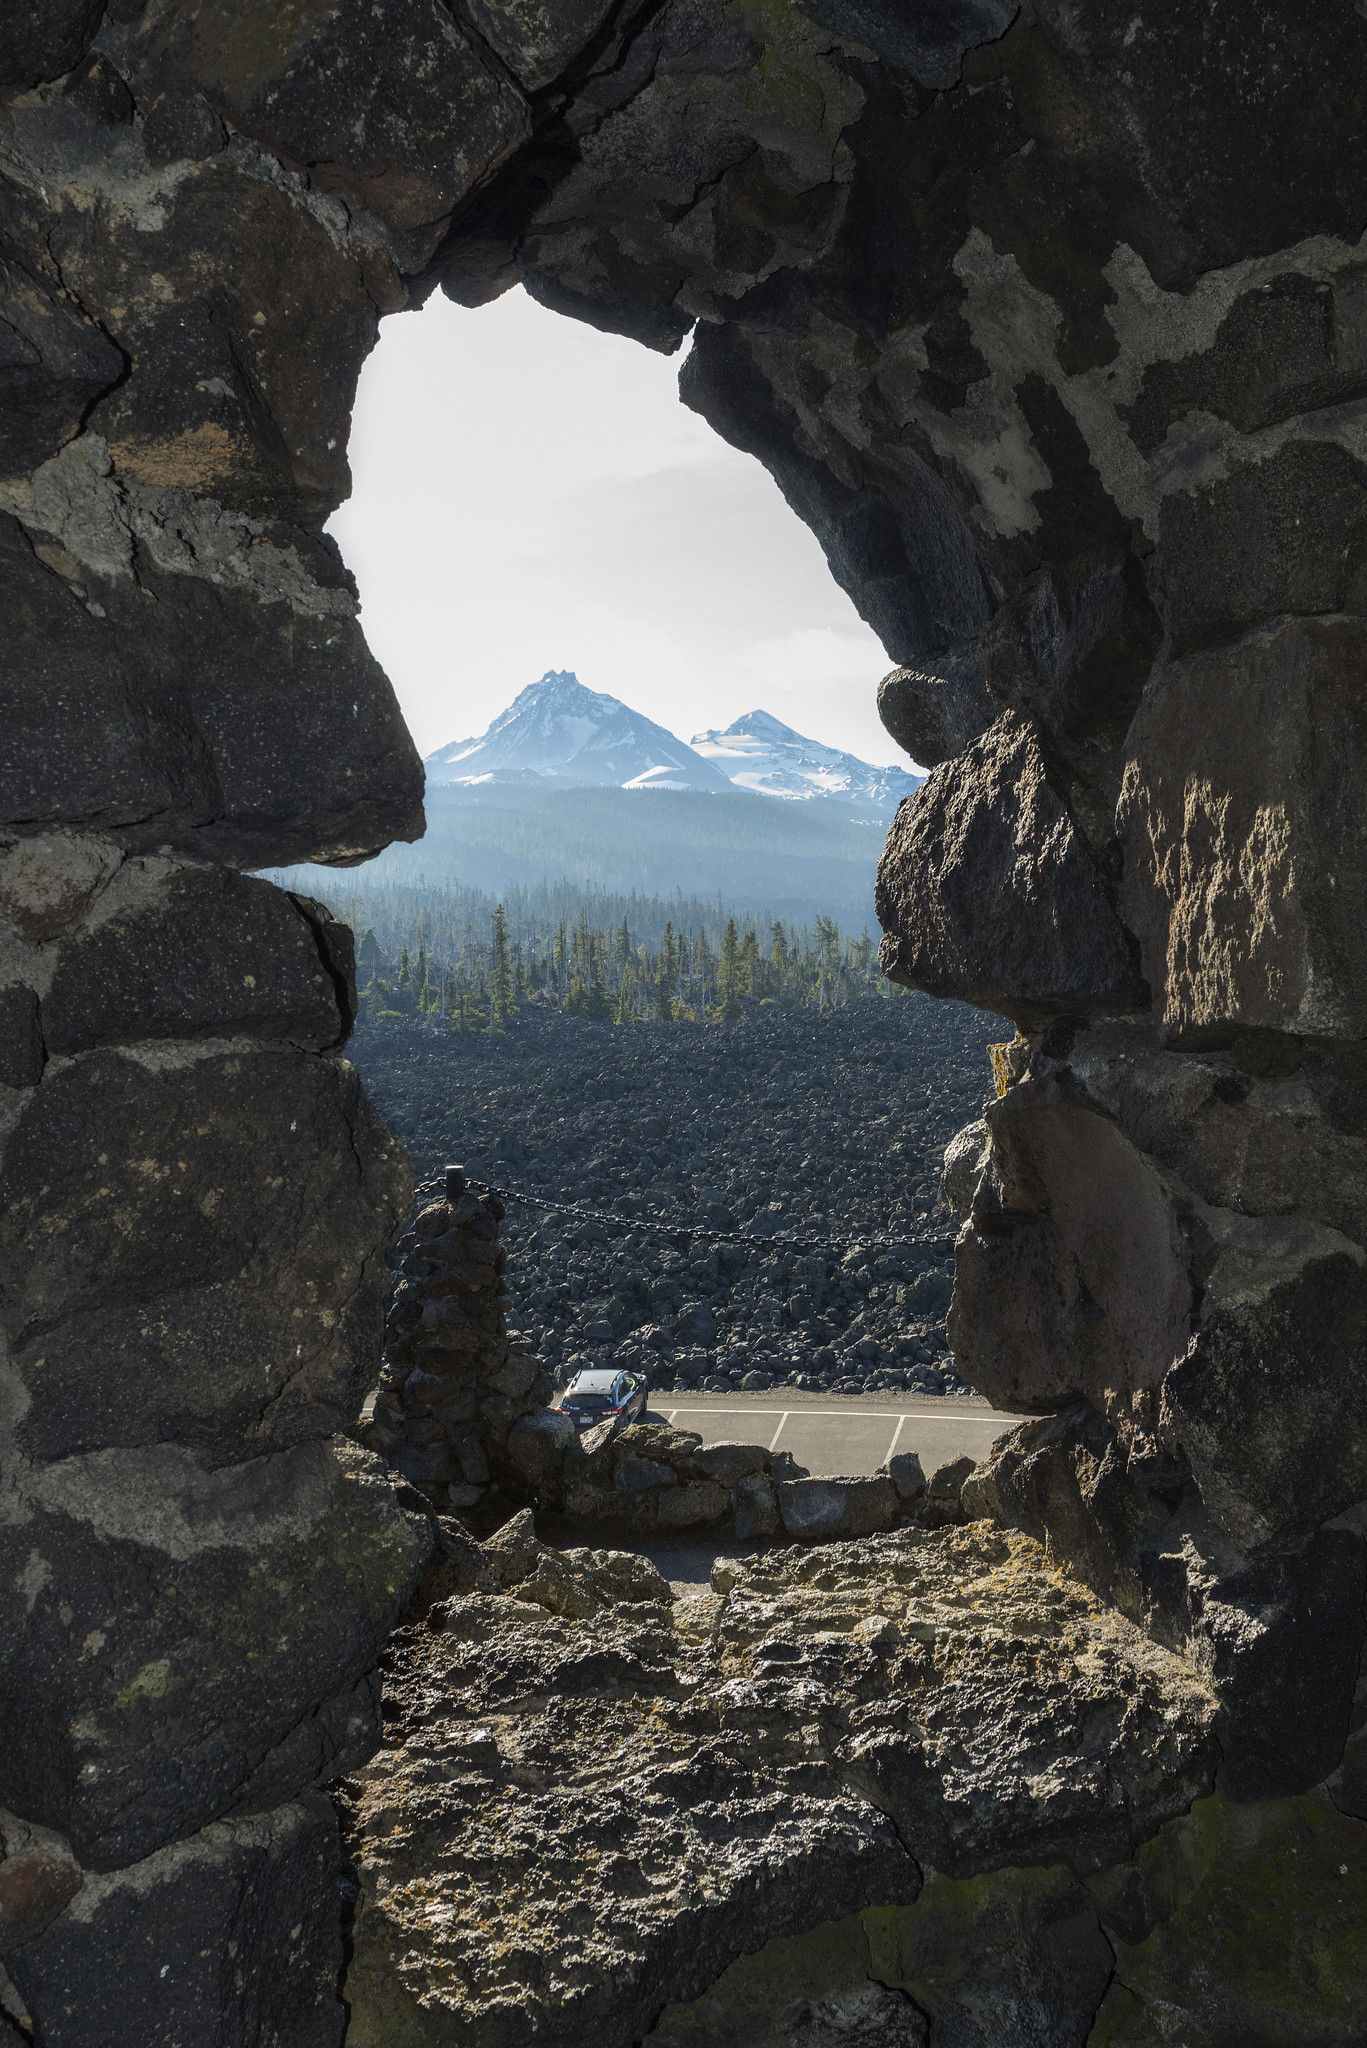 The Civilian Conservation Corps (CCC) built the Dee Wright Observatory in 1935 to provide outstanding views of mountains and volcanoes, still a popular attraction more than 80 years later. (Greg Westergaard, ODOT CC by 2.0)